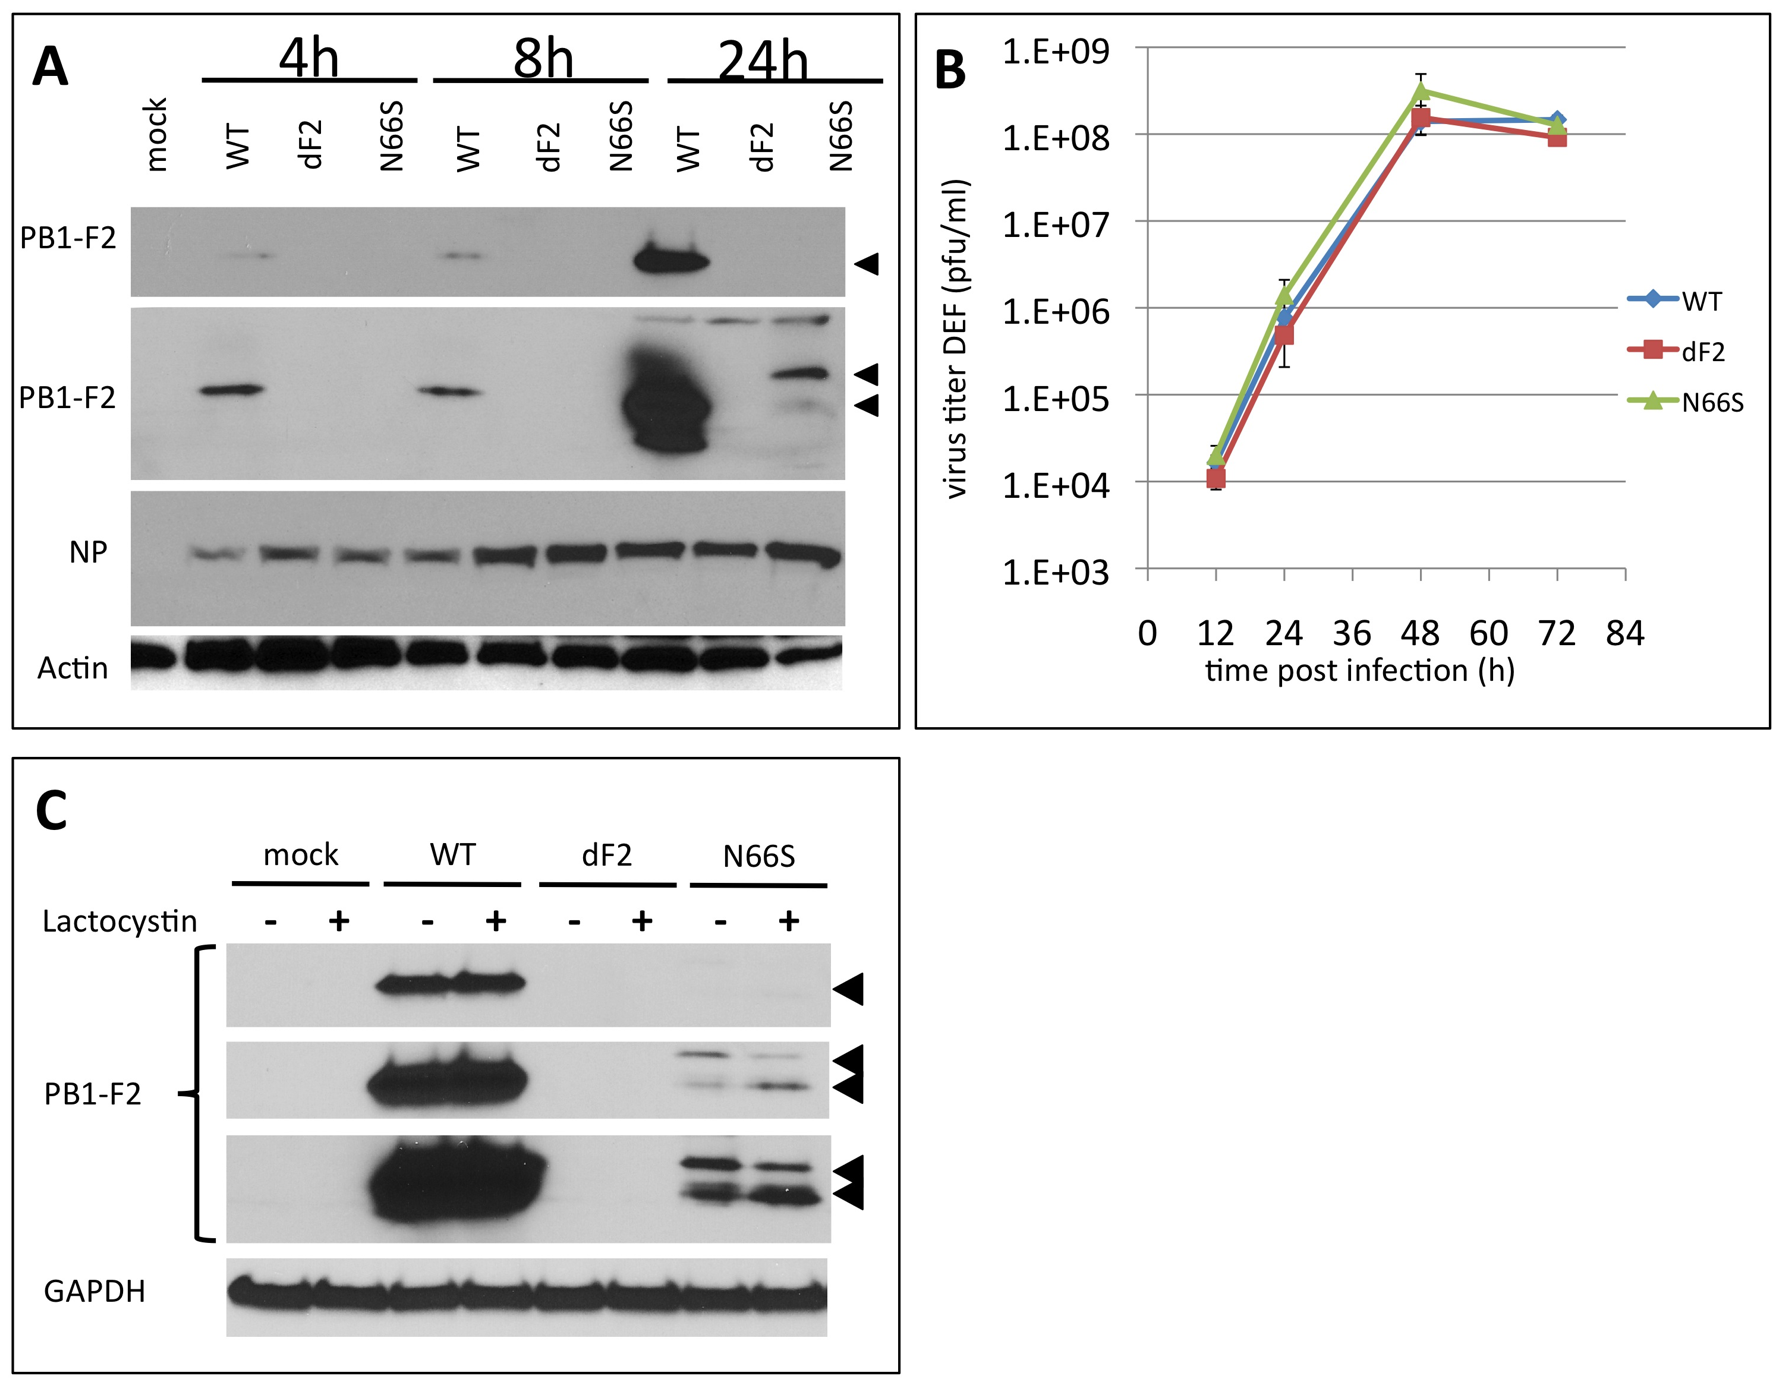 Effects of PB1-F2 expression on replication of A/Viet Nam/1203/2004 in duck fibroblasts <i>in vitro</i>.